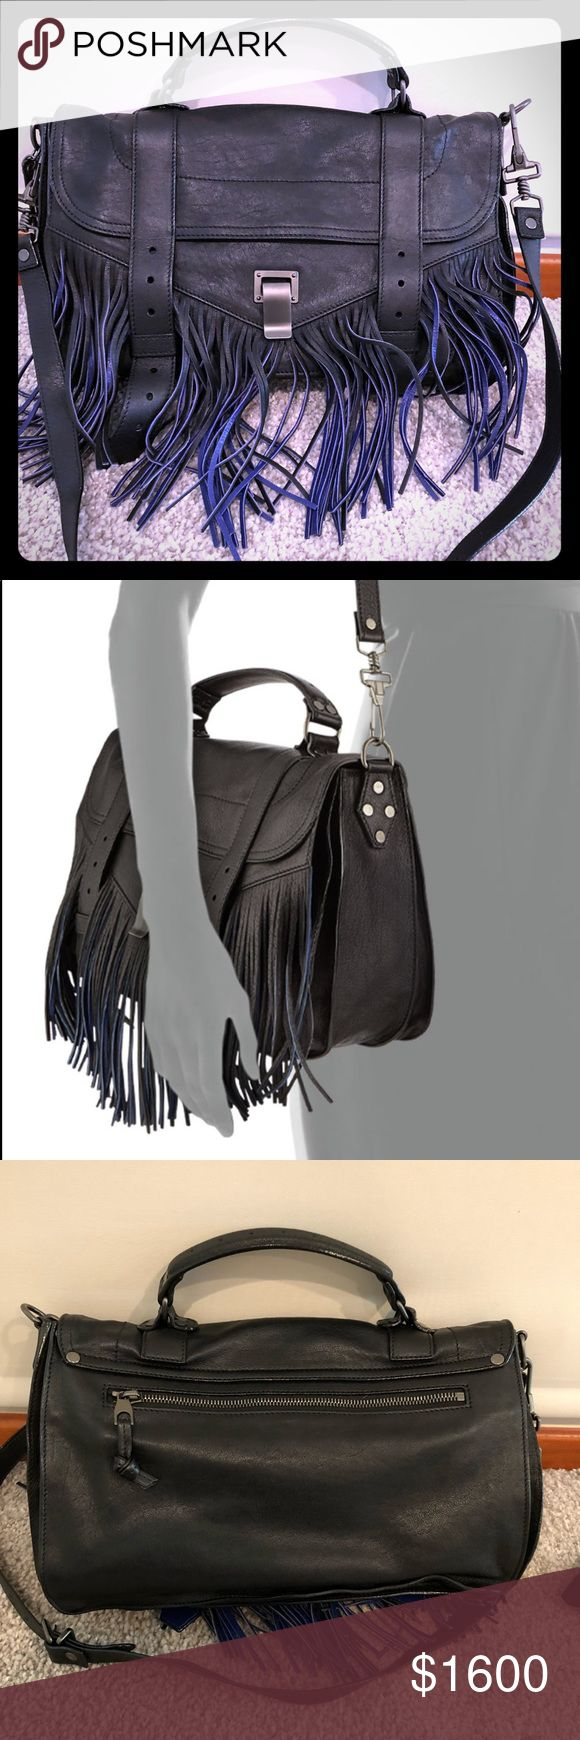 "Proenza Shouler Bicolor Fringe Medium PS1 Proenza Schouler lambskin leather satchel bag with gunmetal hardware. Removable shoulder strap with 16"" drop. Tote handle; 2.5"" drop. Flap top trimmed in long bicolor fringe; double belted details and flip lock. Front zip and snap pocket concealed beneath flap. Interior, logo jacquard lining; center snap tab; one zip pocket. Exterior, back zip pocket; logo plate hangs at one side. 8.5""H x 12.5""W x 4""D. Made in Italy. Gently used without any…"